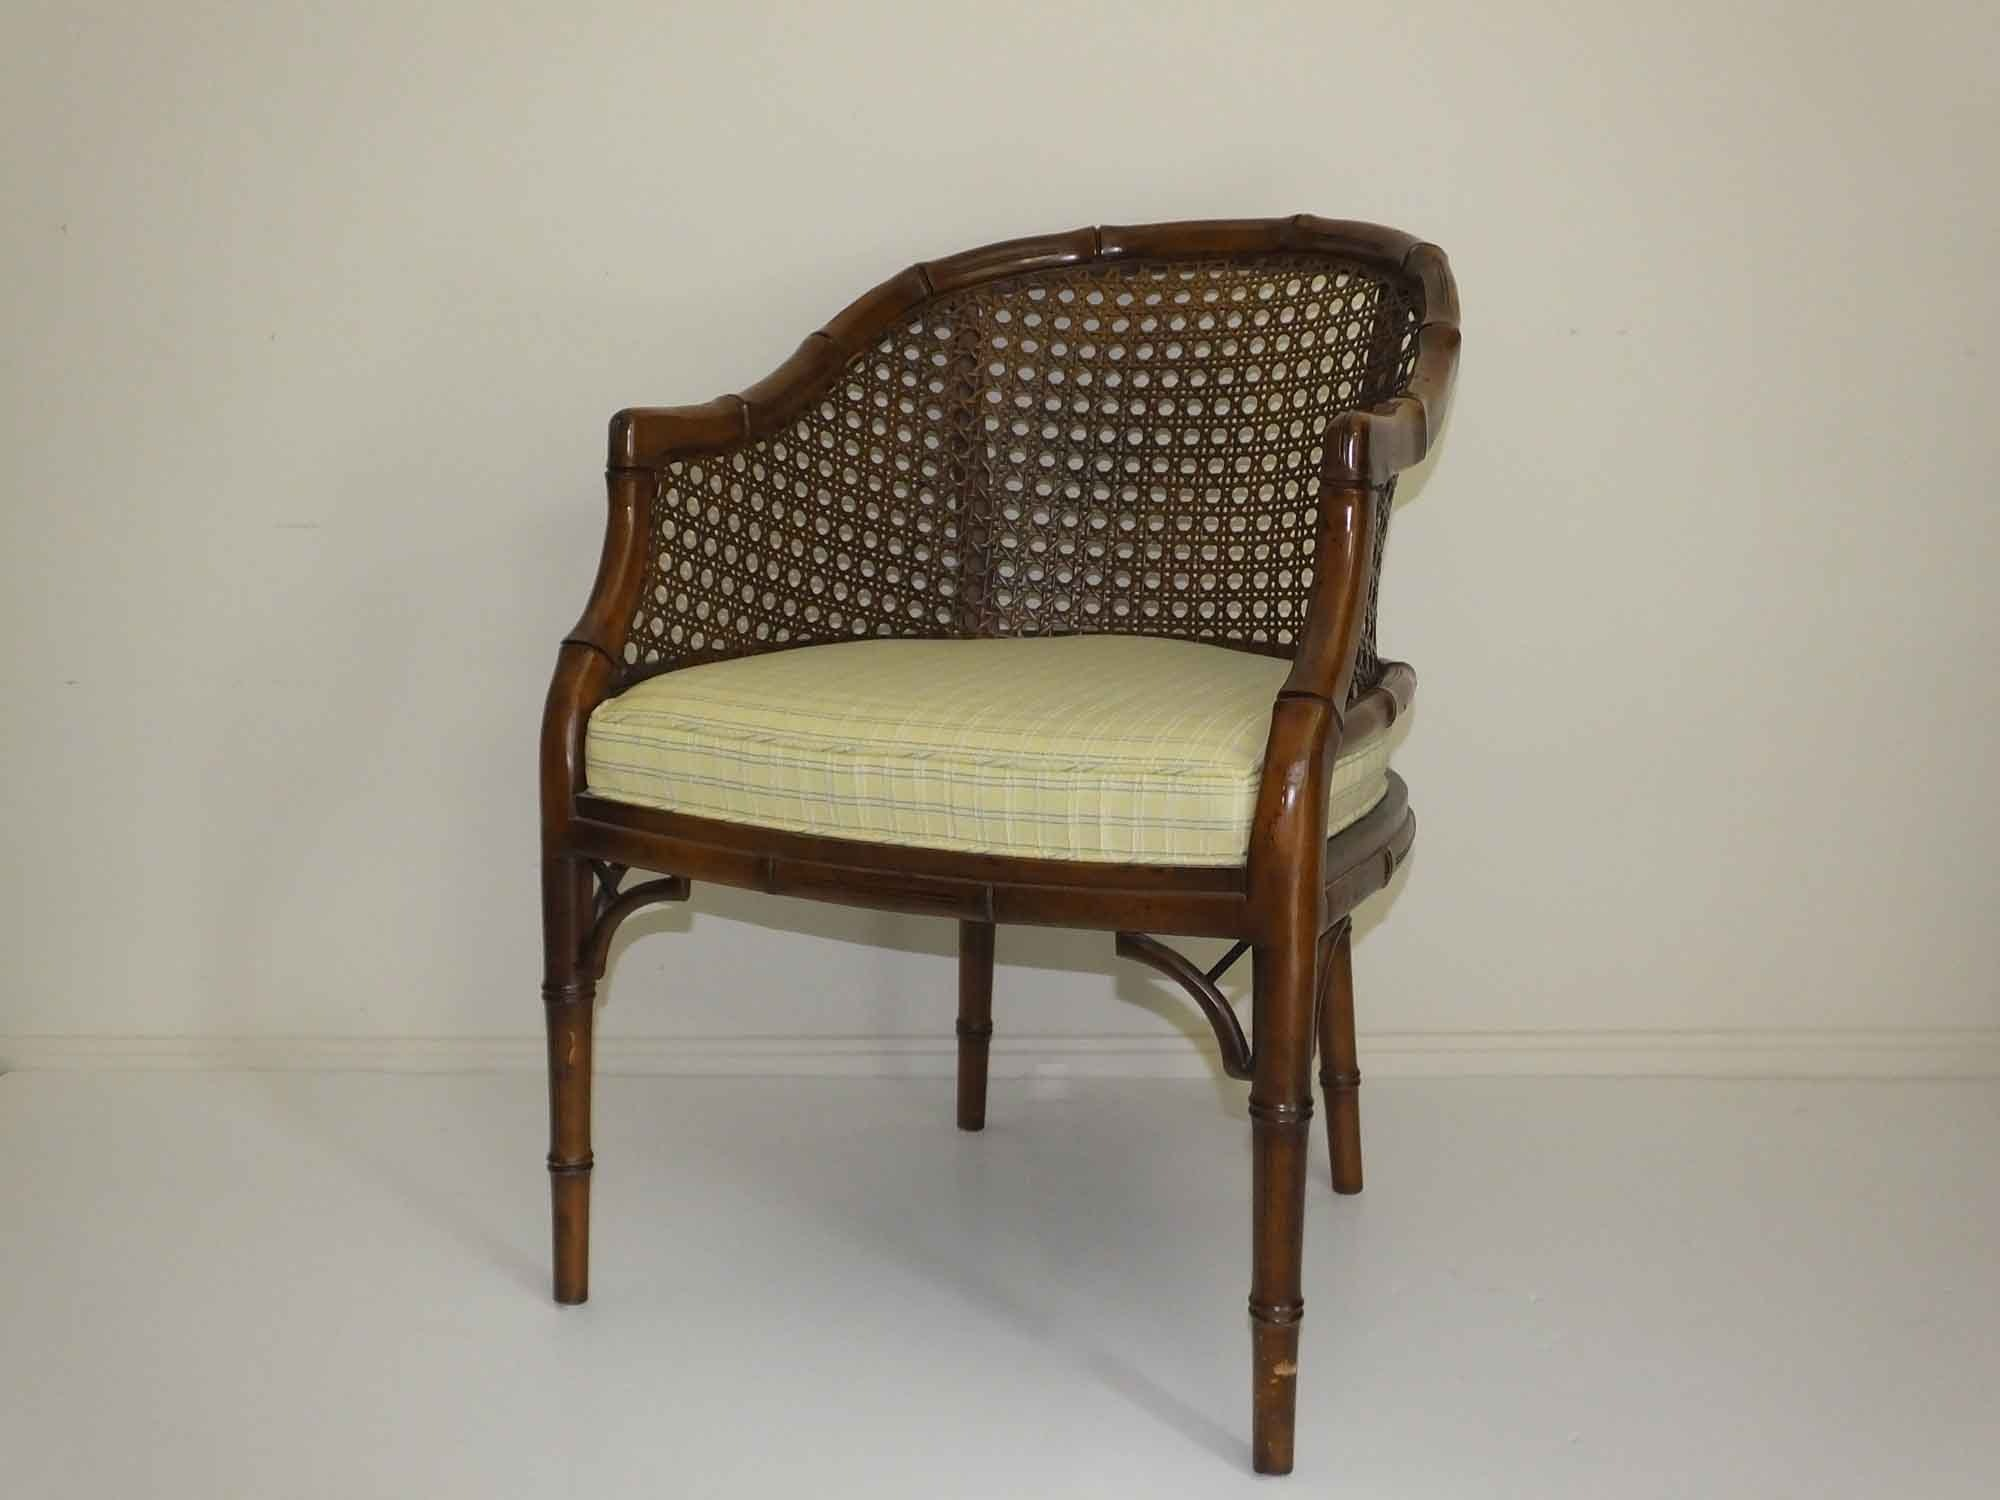 vintage cherry bamboo style cane back chair - Retro Chairs